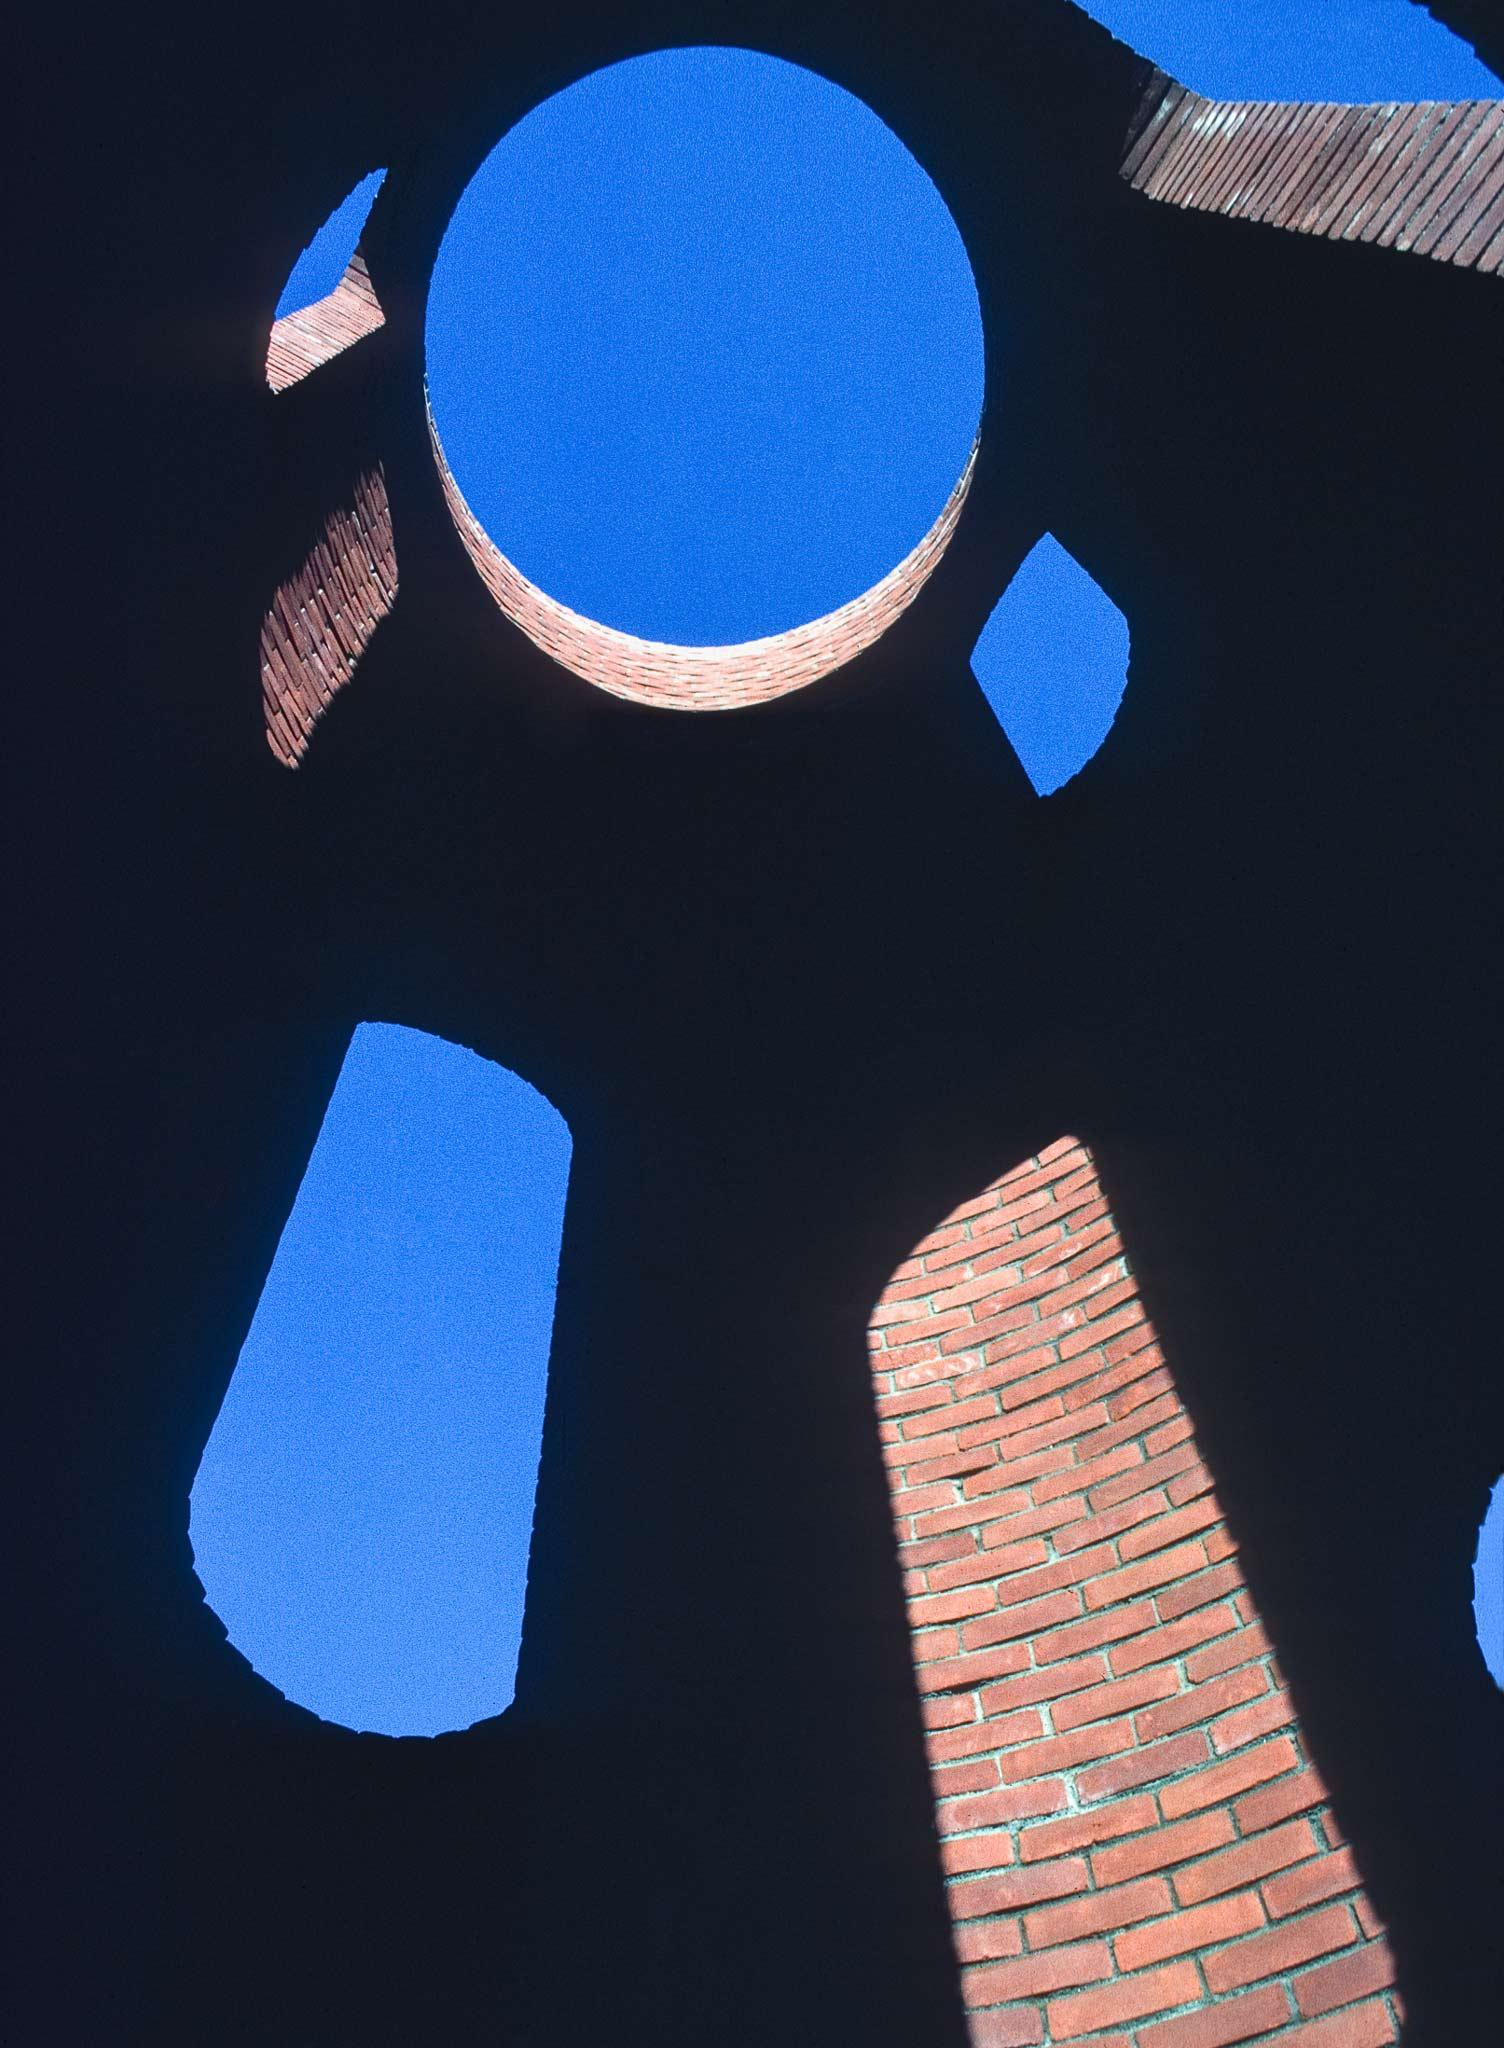 Interior view of a tall circular brick structure with a circular oculus at the top